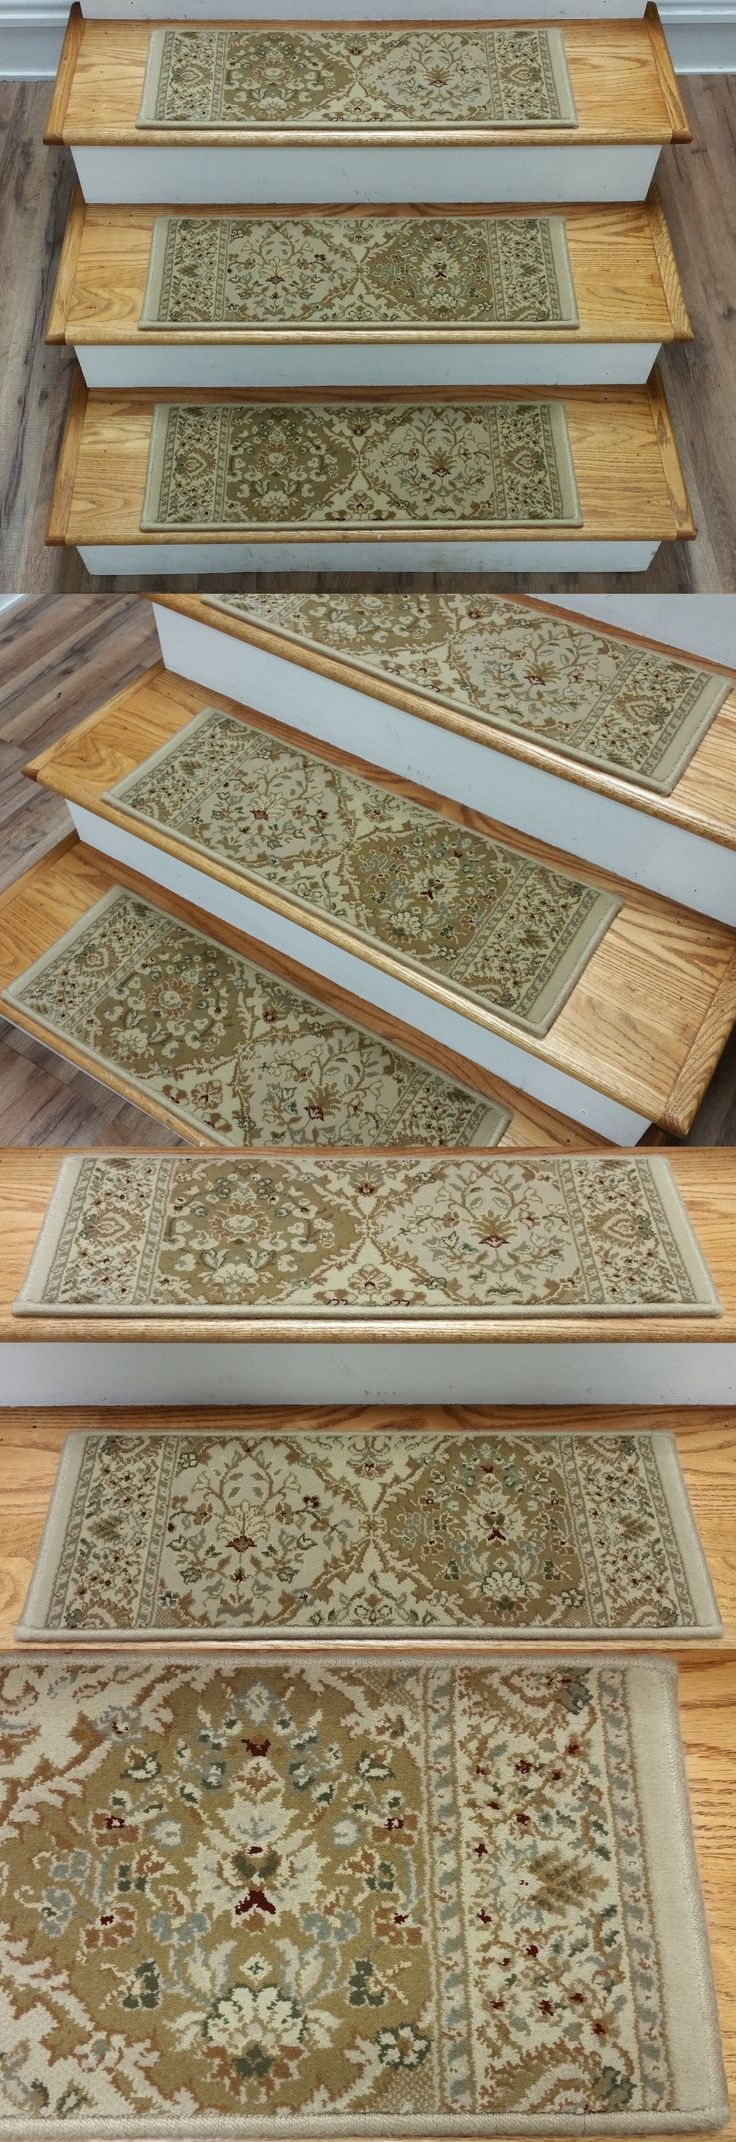 Best 25 Traditional Stair Tread Rugs Ideas Only On Pinterest Intended For Rectangular Stair Tread Rugs (#3 of 20)